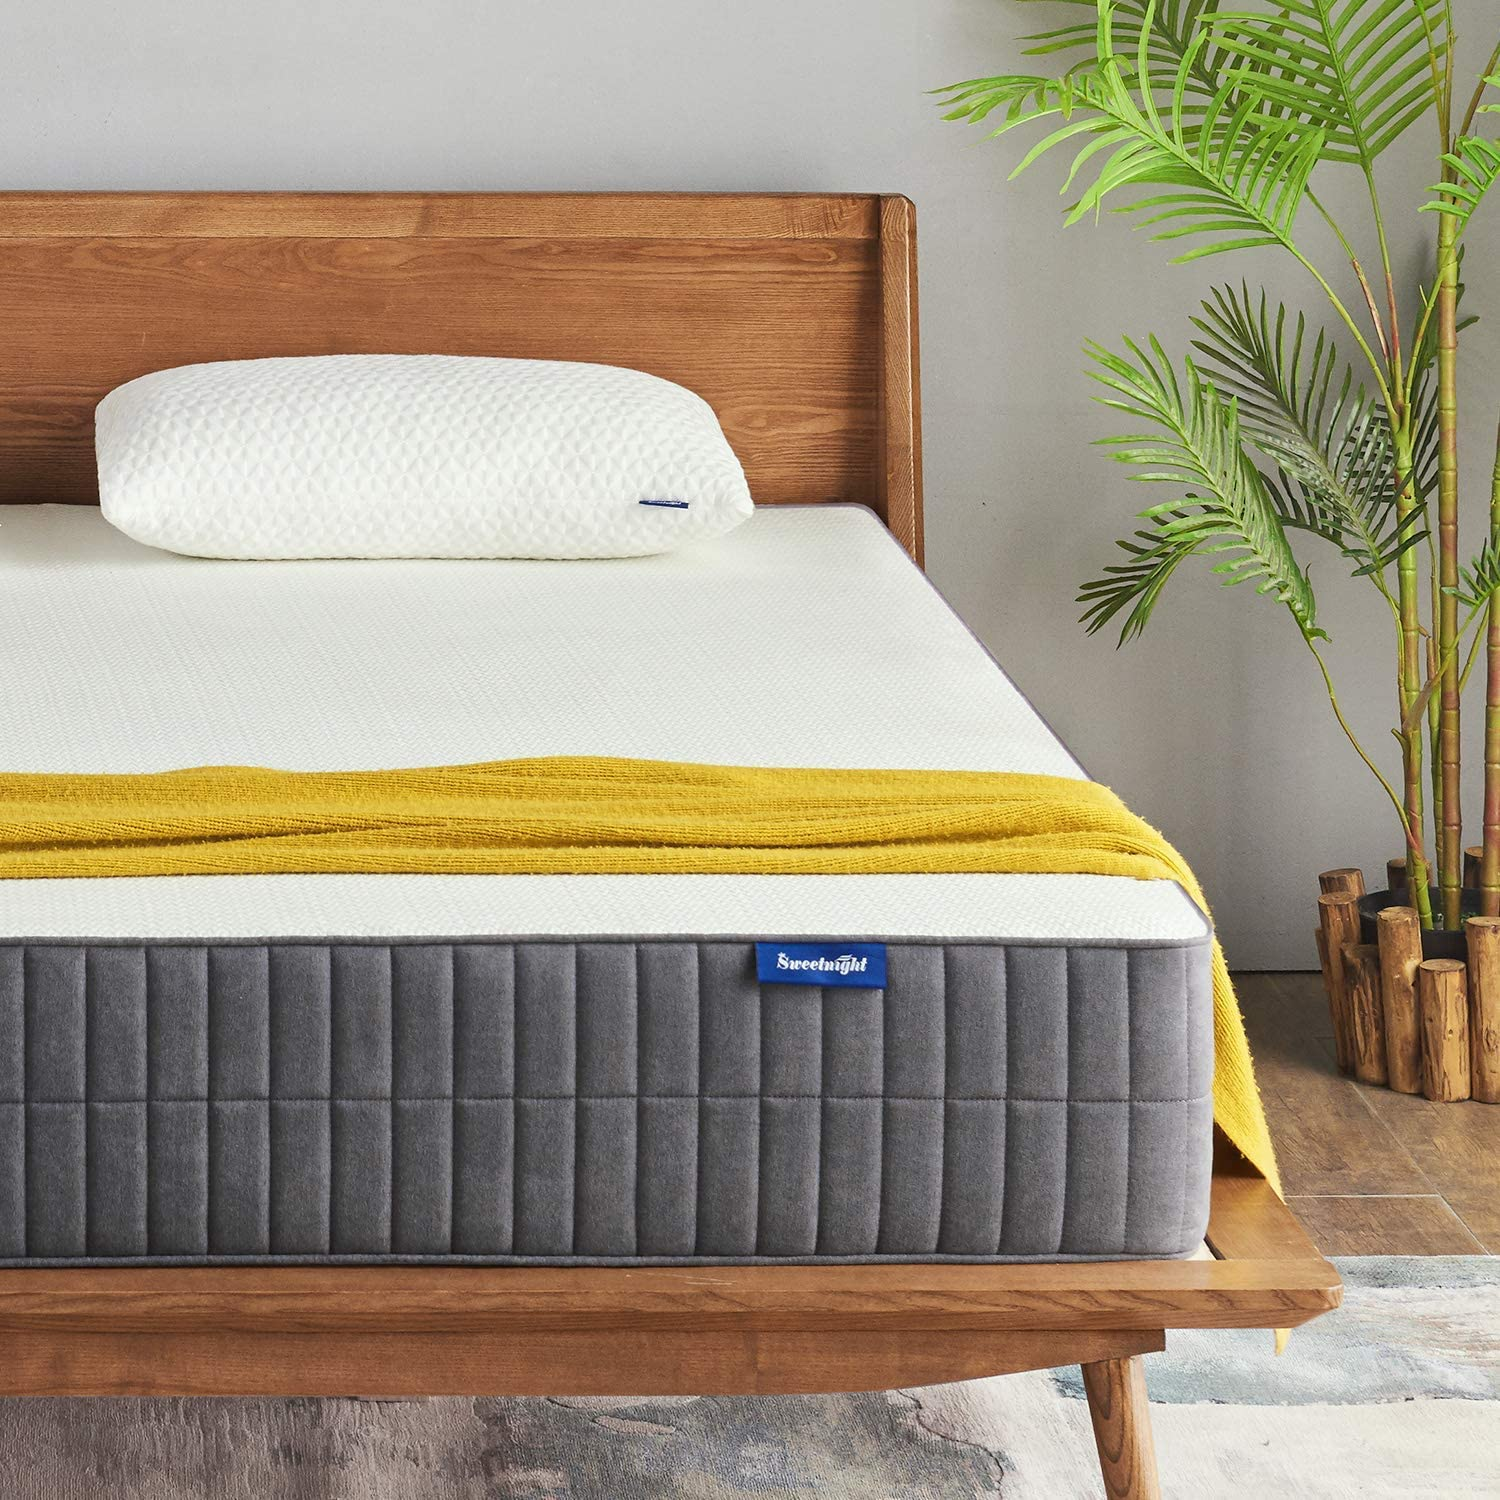 Sweetnight Queen Mattress-Queen Size Mattress